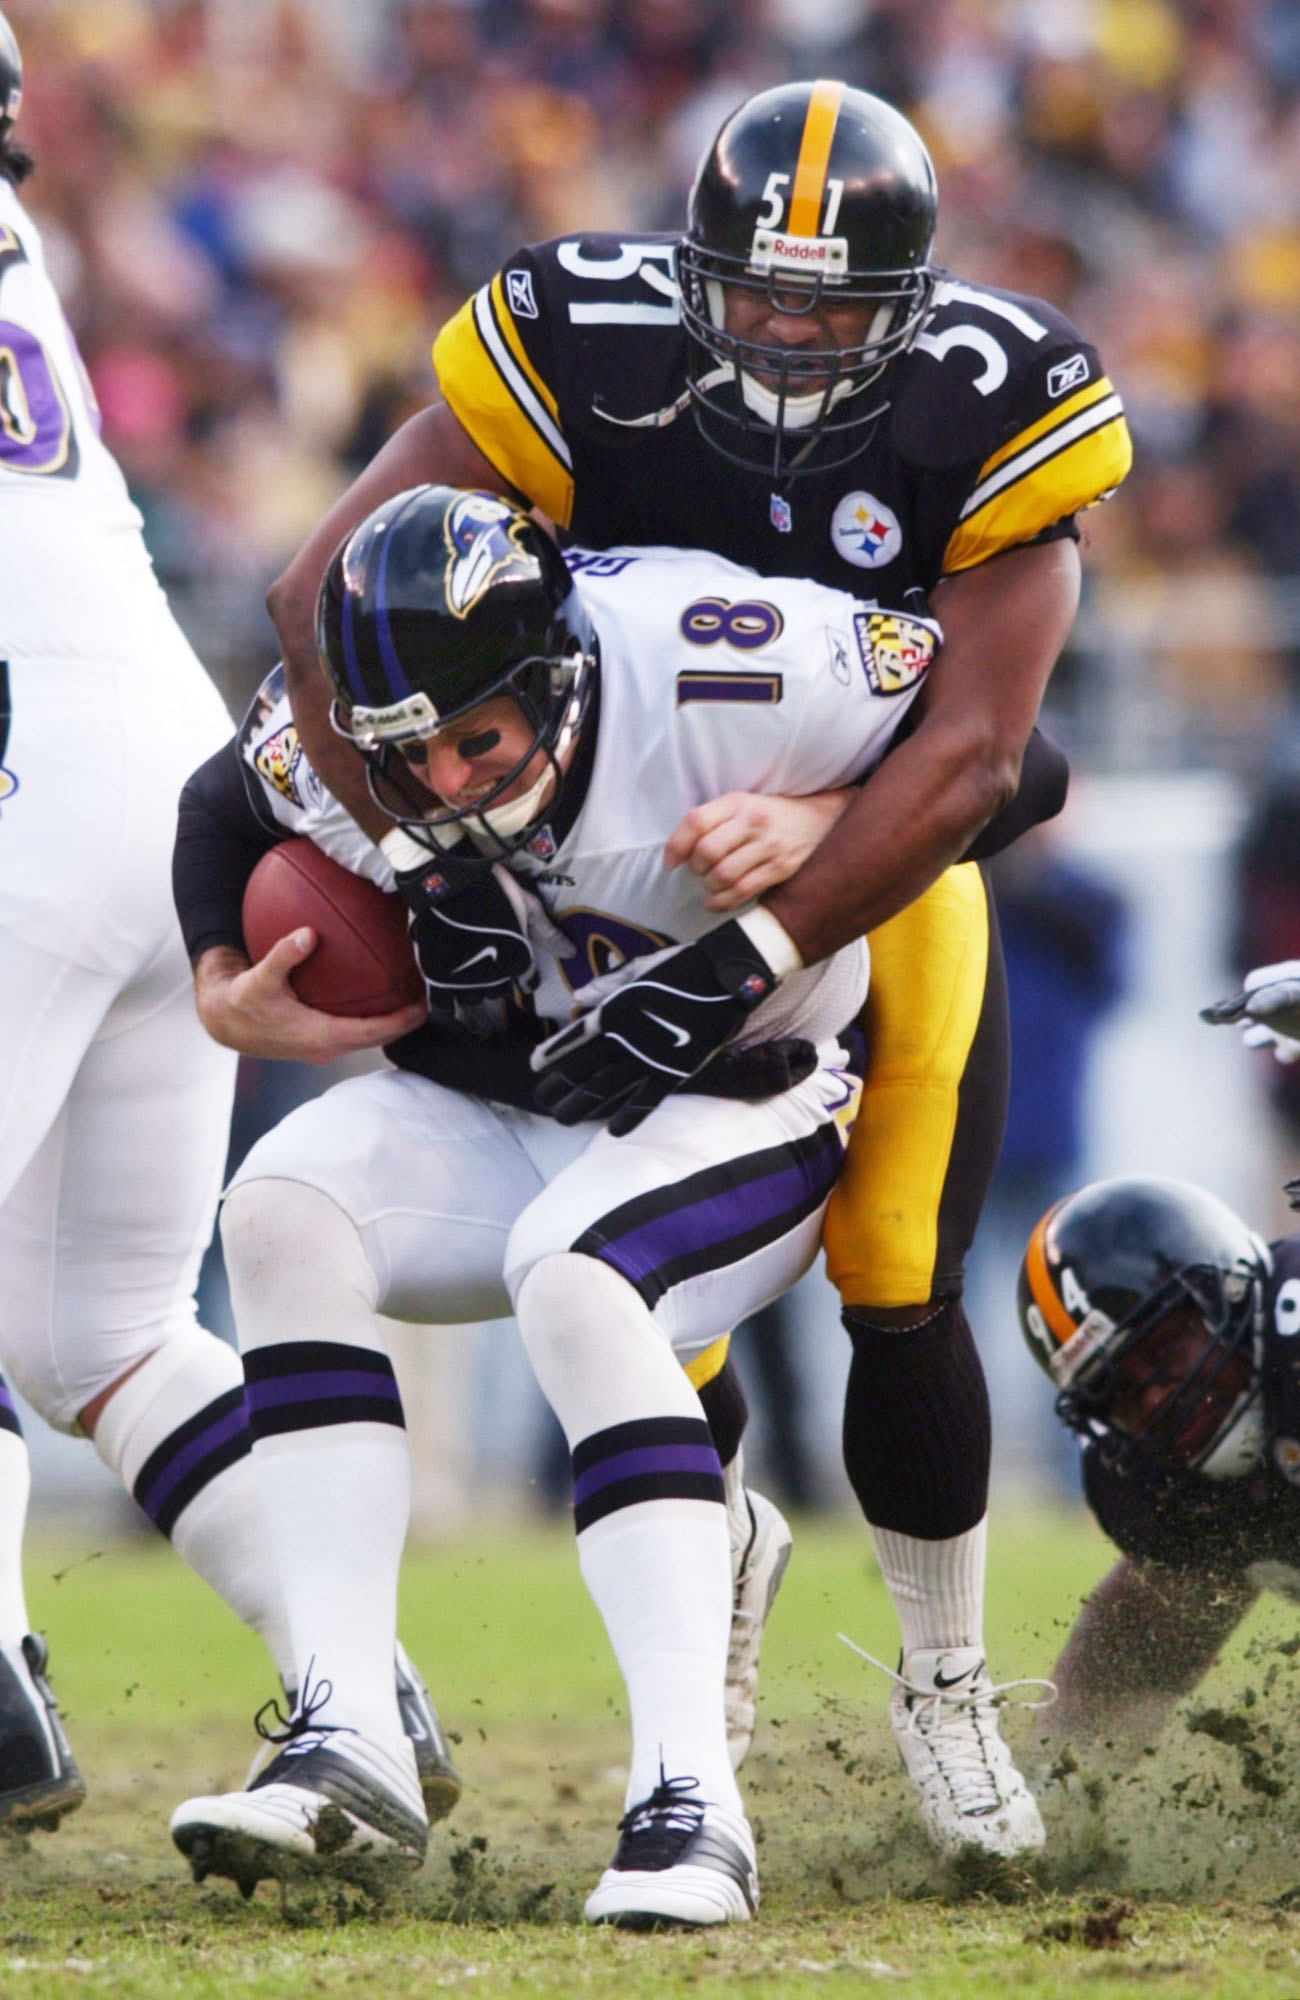 20 Jan 2002:  Mike Jones #51 of the Pittsburgh Steelers collects a sack on Elvis Grbac #18 of the Baltimore Ravens in AFC Playoff action at Heinz Field in Pittsburgh, Pennsylvania. DIGITAL IMAGE. Mandatory Credit: Doug Pensinger/Getty Images